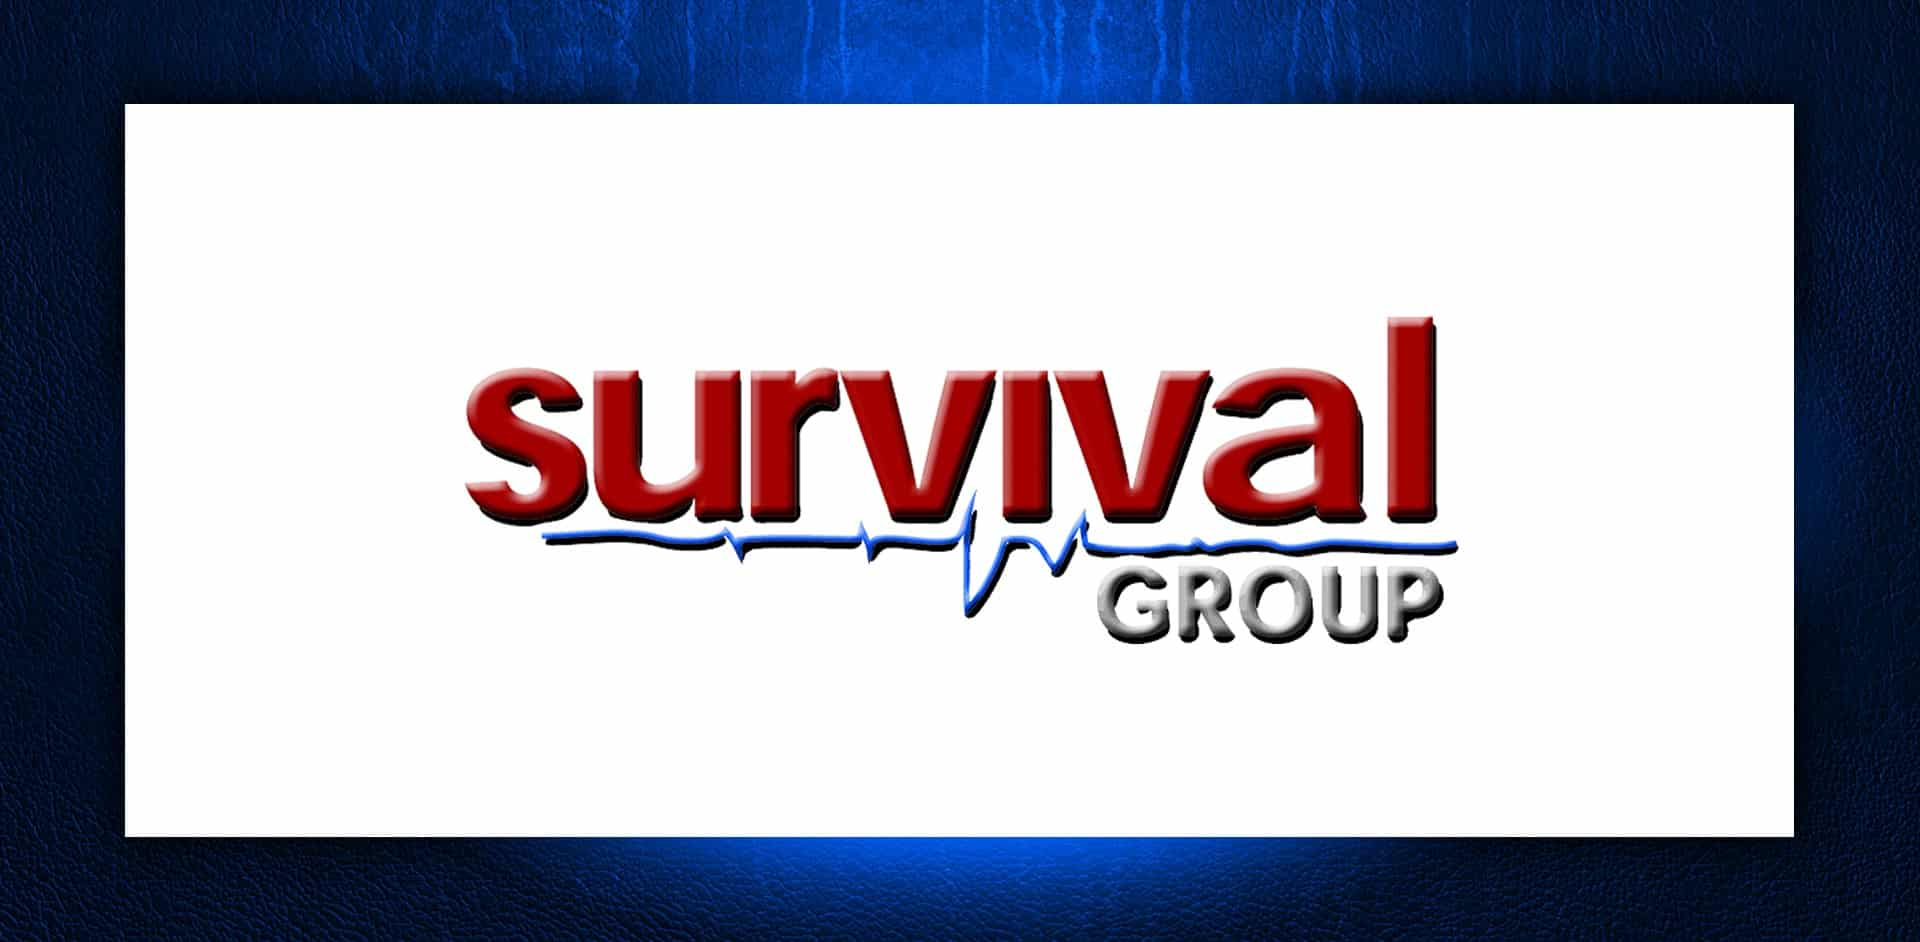 Survival Group